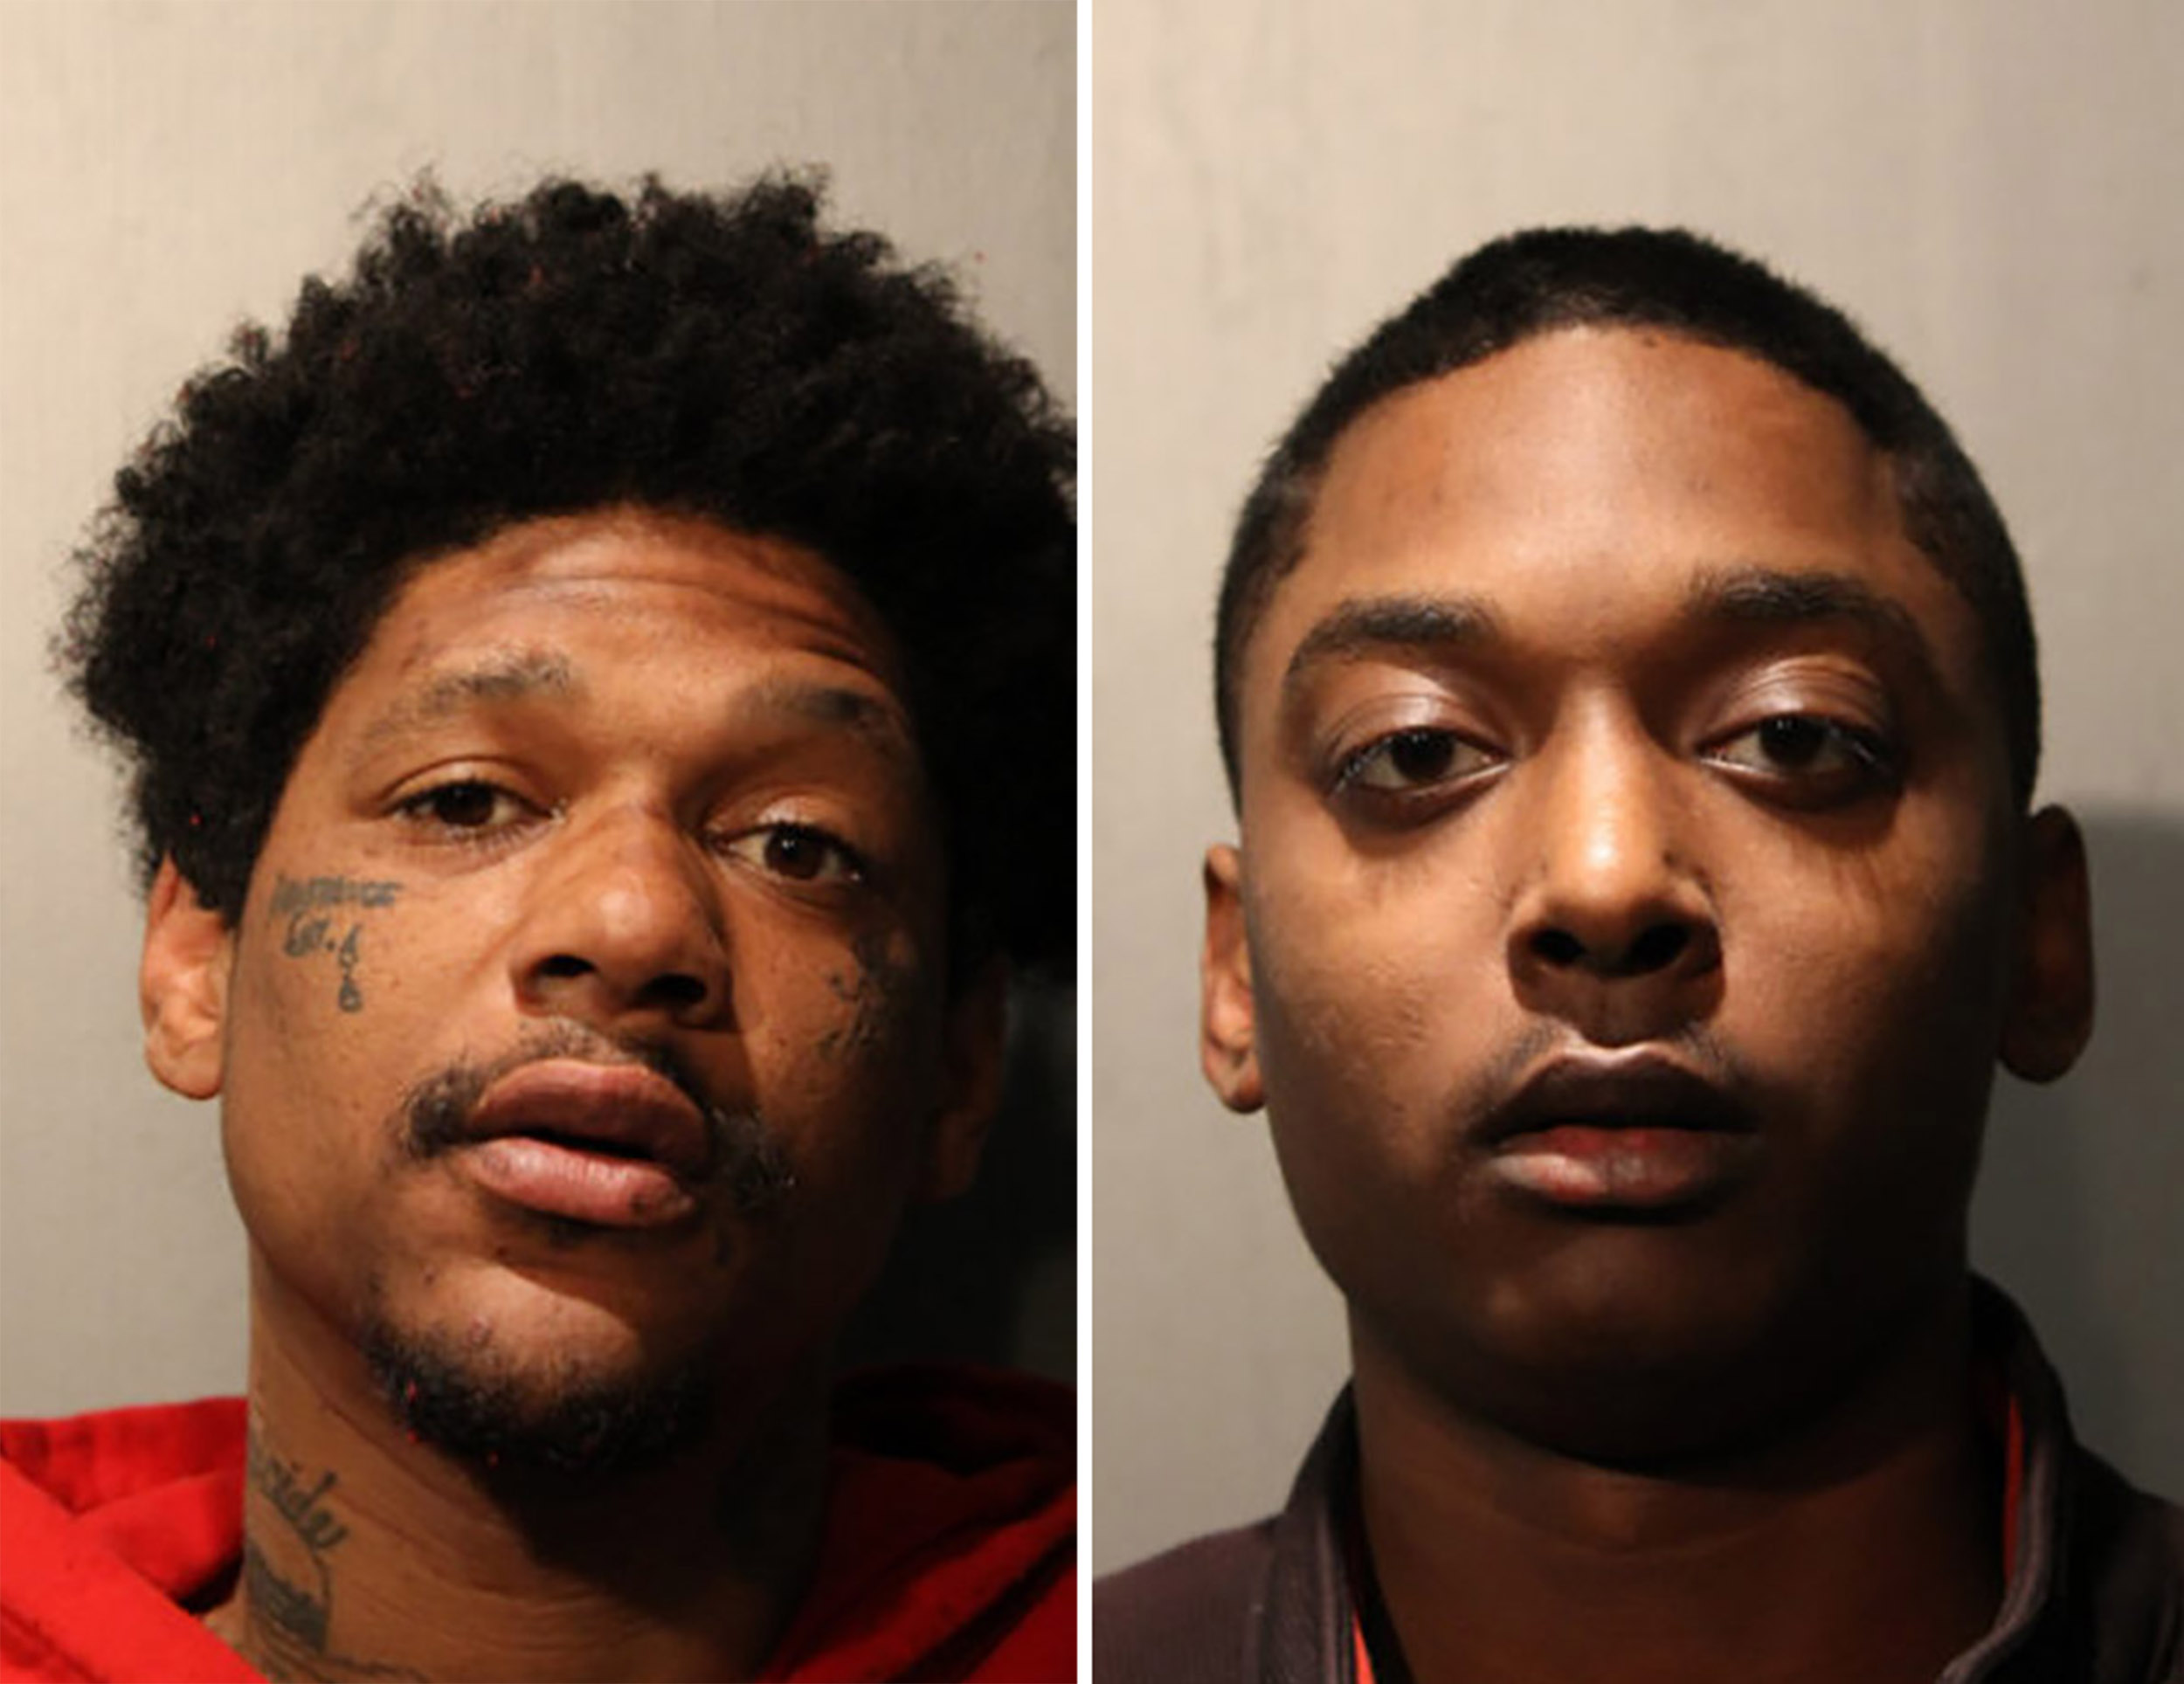 Two men arrested after off-duty Chicago police officer shot dead while sitting in car